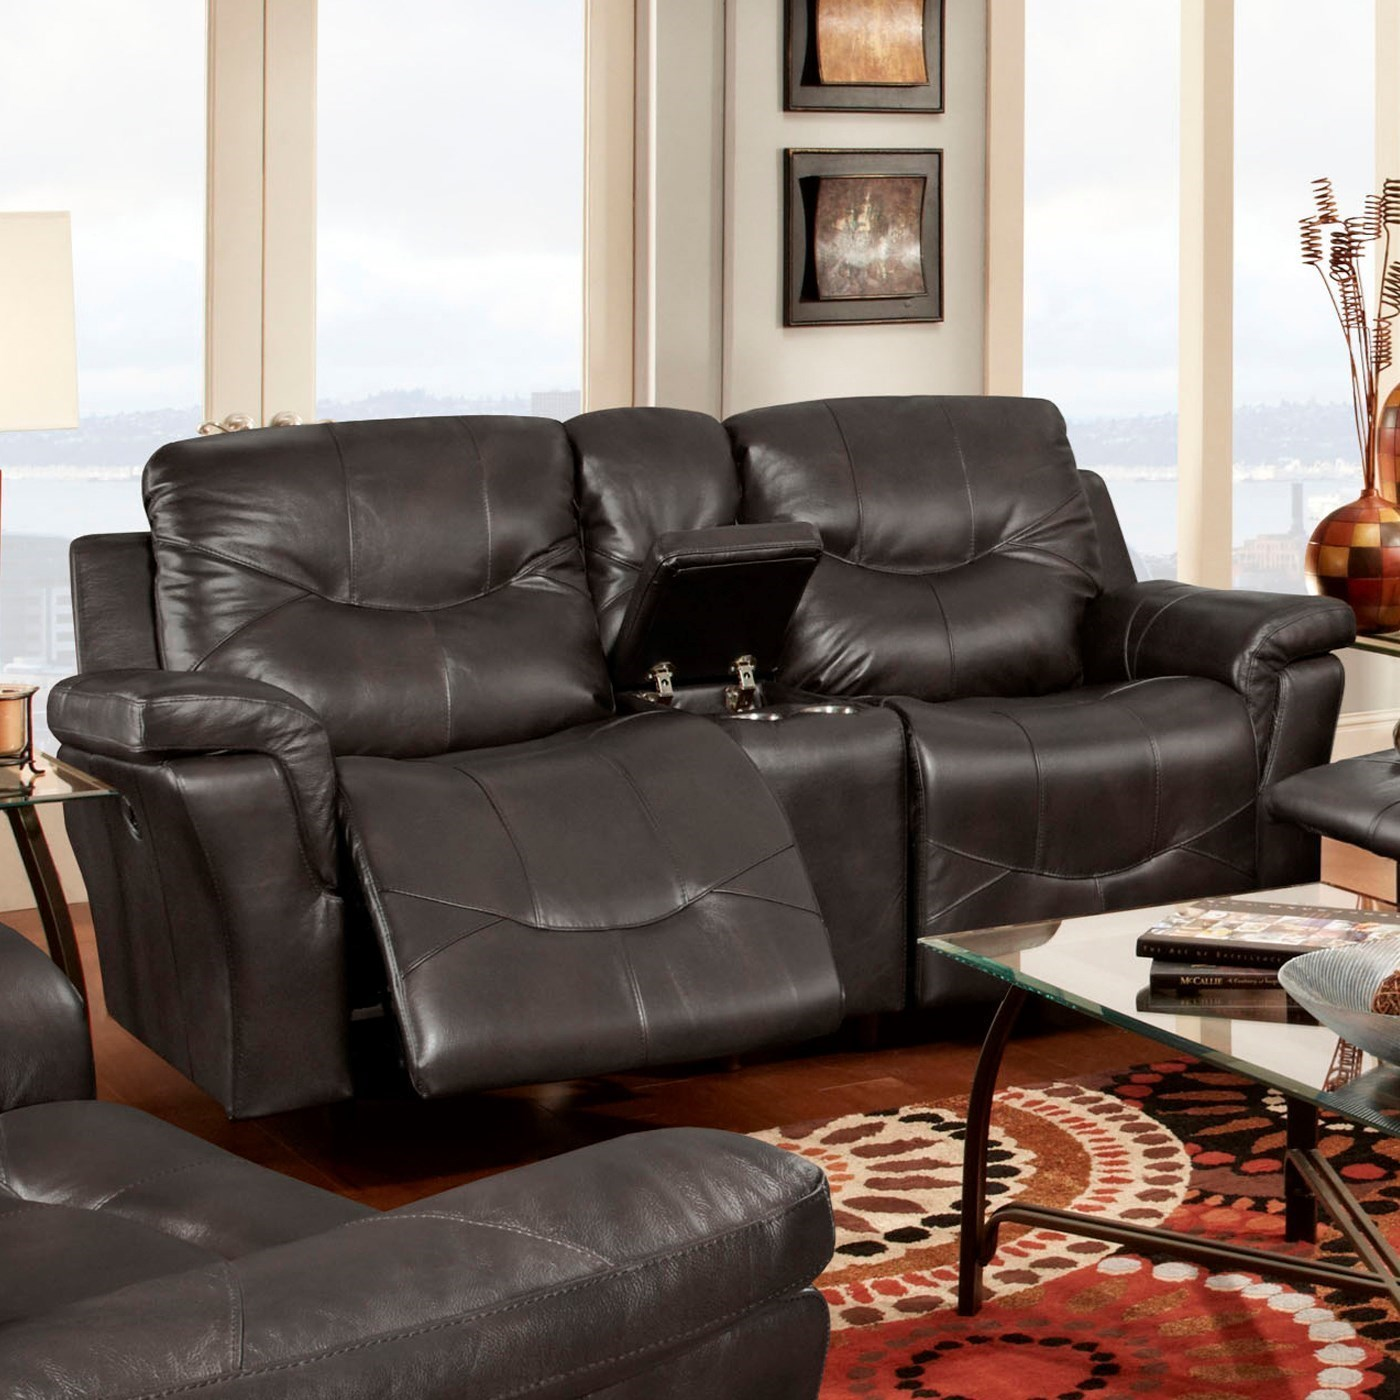 Franklin Milano Power Reclining Console Loveseat - Furniture and ApplianceMart - Reclining Love Seat  sc 1 st  Furniture and ApplianceMart : franklin power recliner - islam-shia.org